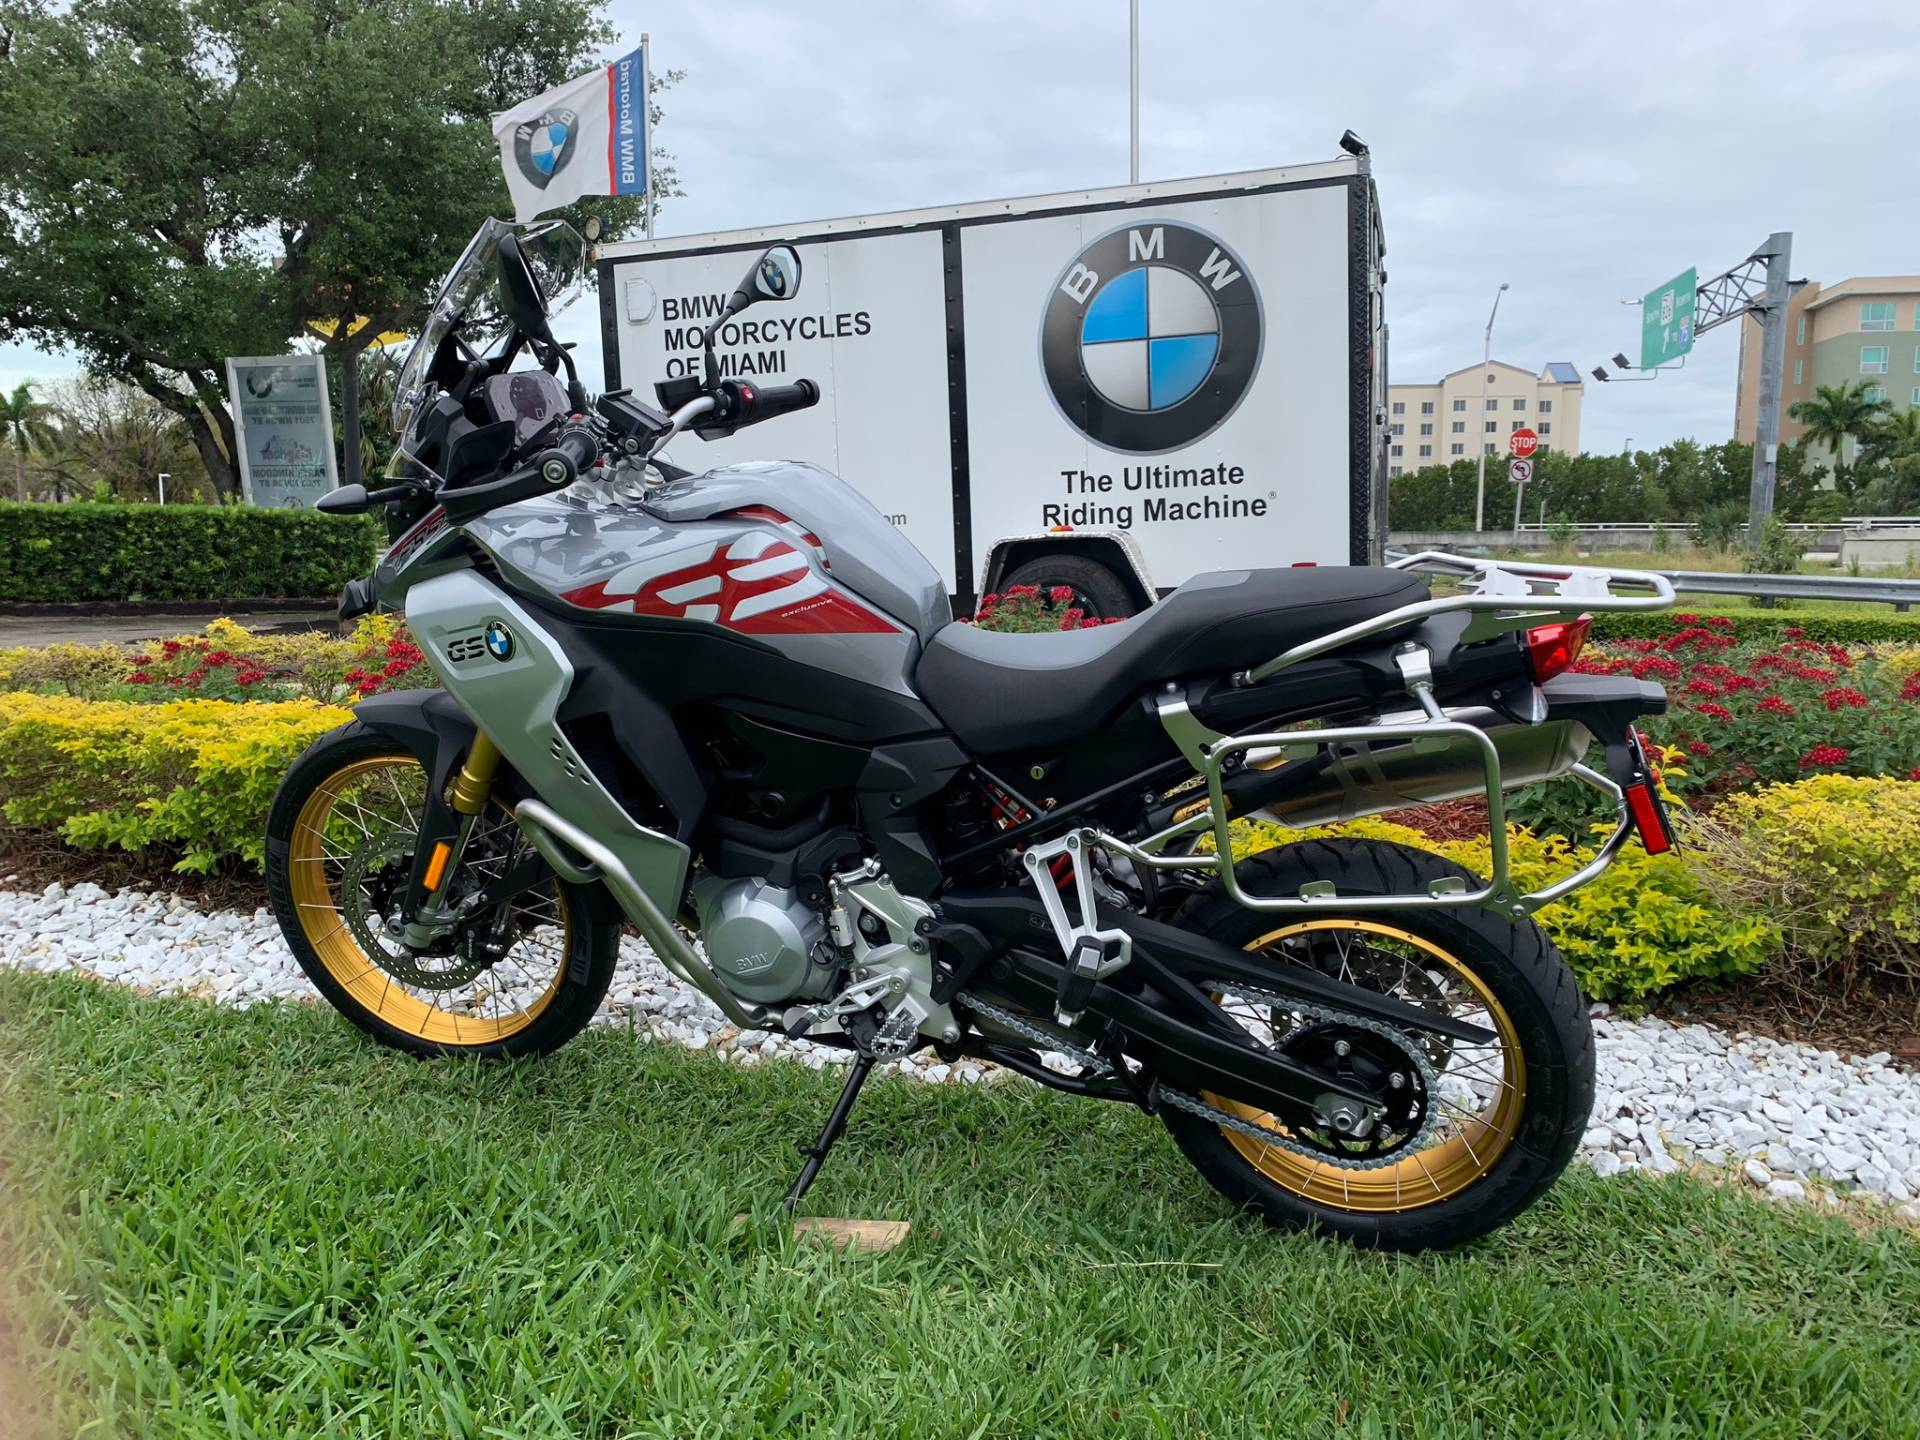 New 2019 BMW F 850 GSA for sale, BMW F 850GSA for sale, BMW Motorcycle F850GSA, new BMW 850 Adventure, Adventure. BMW Motorcycles of Miami, Motorcycles of Miami, Motorcycles Miami, New Motorcycles, Used Motorcycles, pre-owned. #BMWMotorcyclesOfMiami #MotorcyclesOfMiami #MotorcyclesMiami - Photo 11